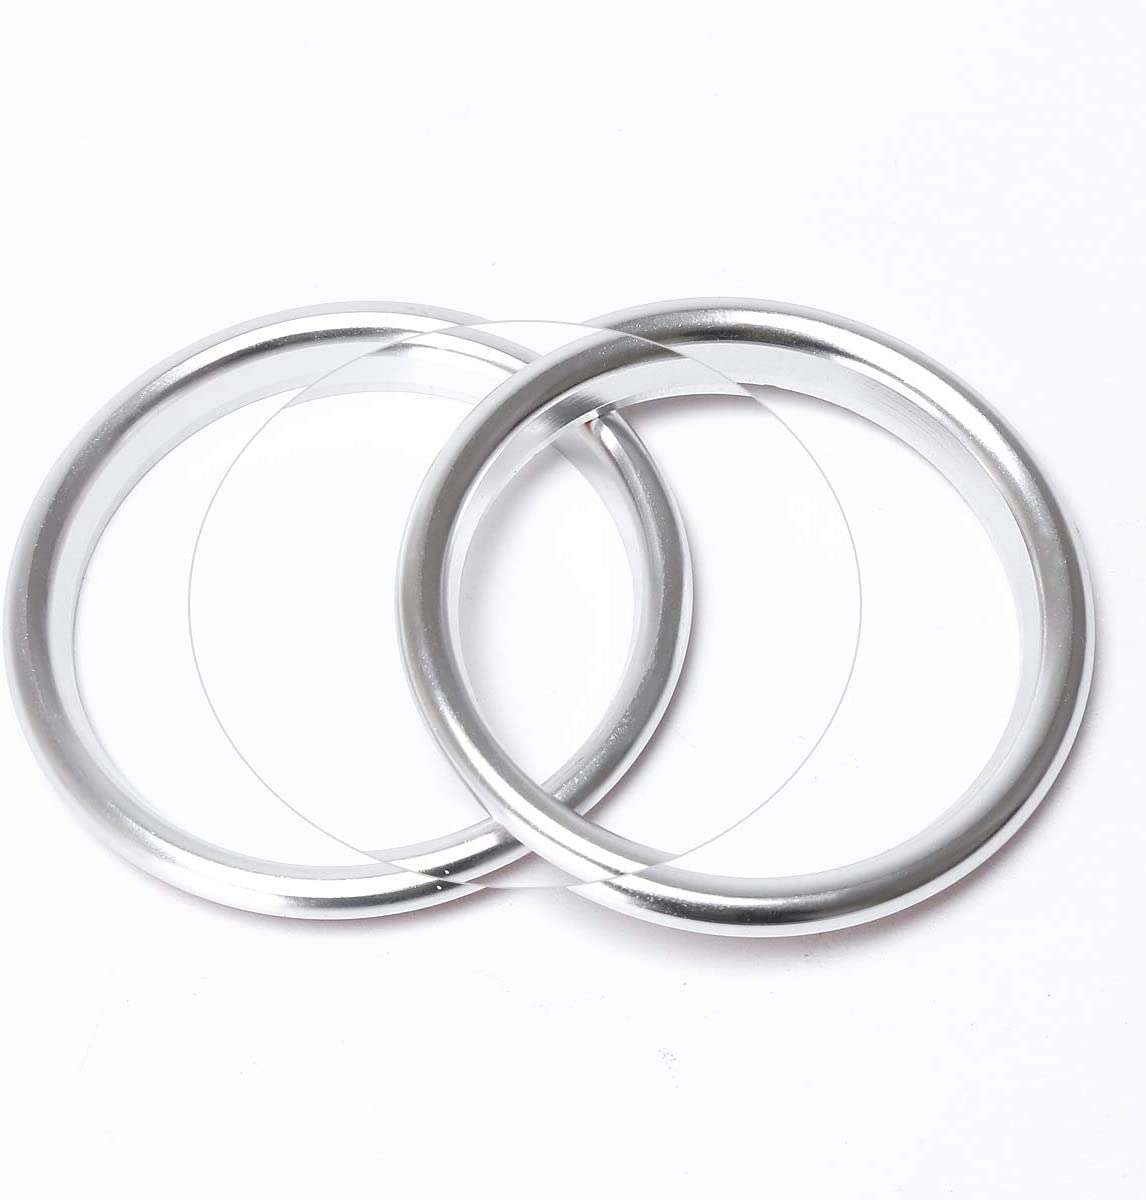 Air Vent Outlet Decoration Ring Air Condition Vent Cover Stickers for 2013-2016 Audi A3//S3 Aluminium Alloy 4pcs//Set,Silver Color